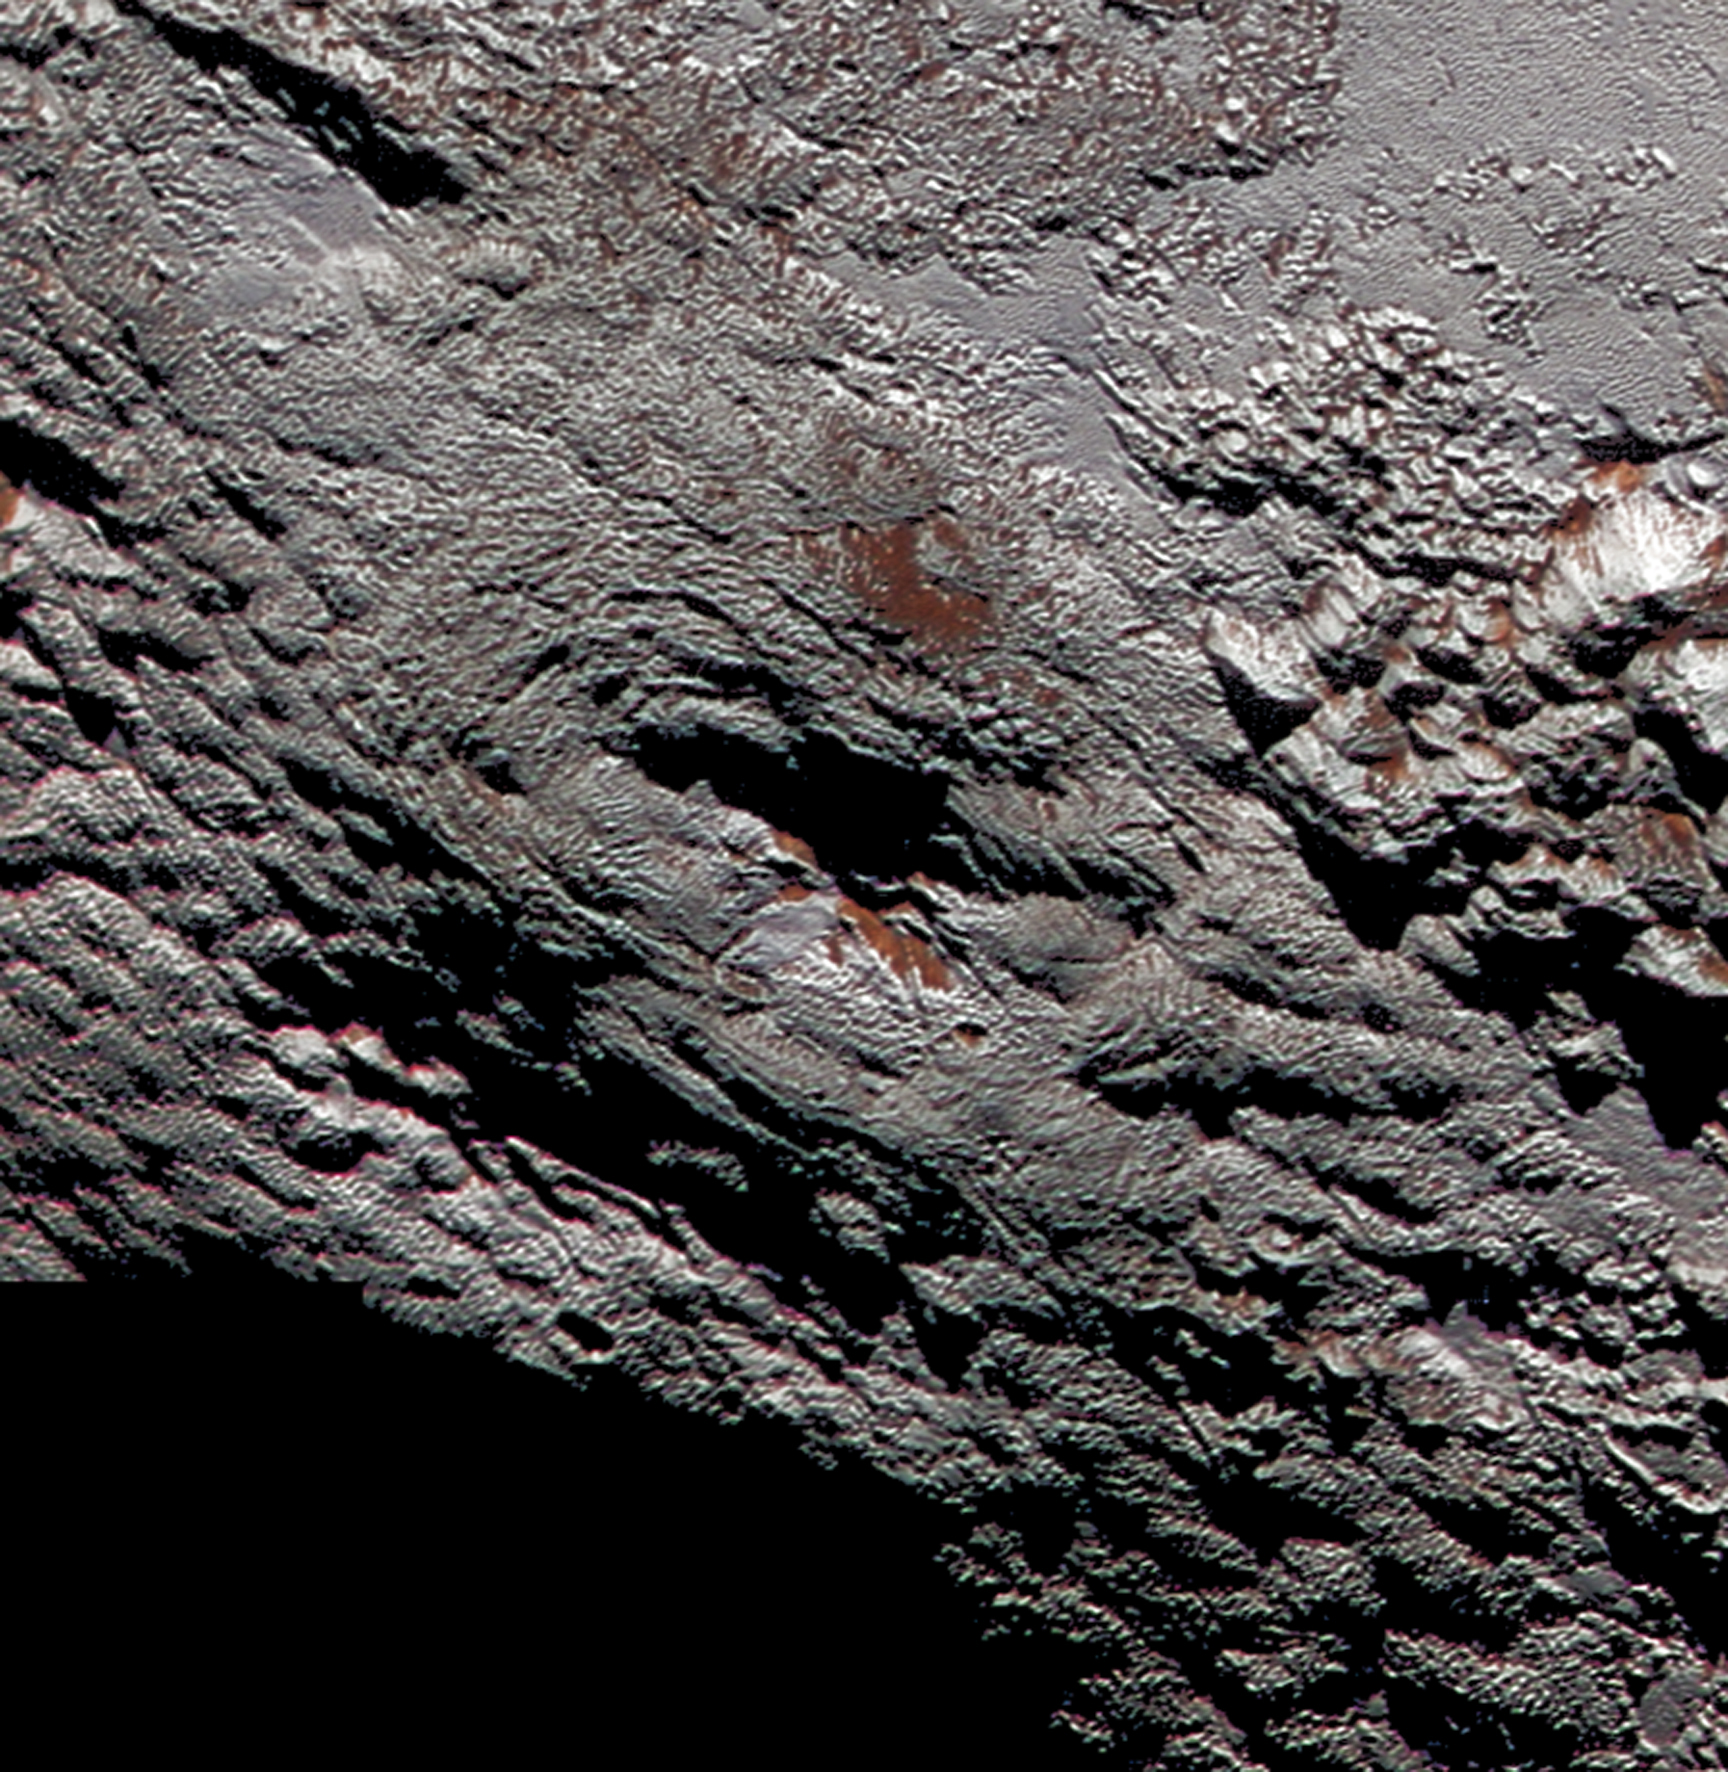 Figure 14: This rounded mountain, named Wright Mons, has what appears to be a summit crater. It is one of two candidates for evidence of possible recent cryovolcanism seen on Pluto by New Horizons. Credit: NASA/JHUAPL/SwRI